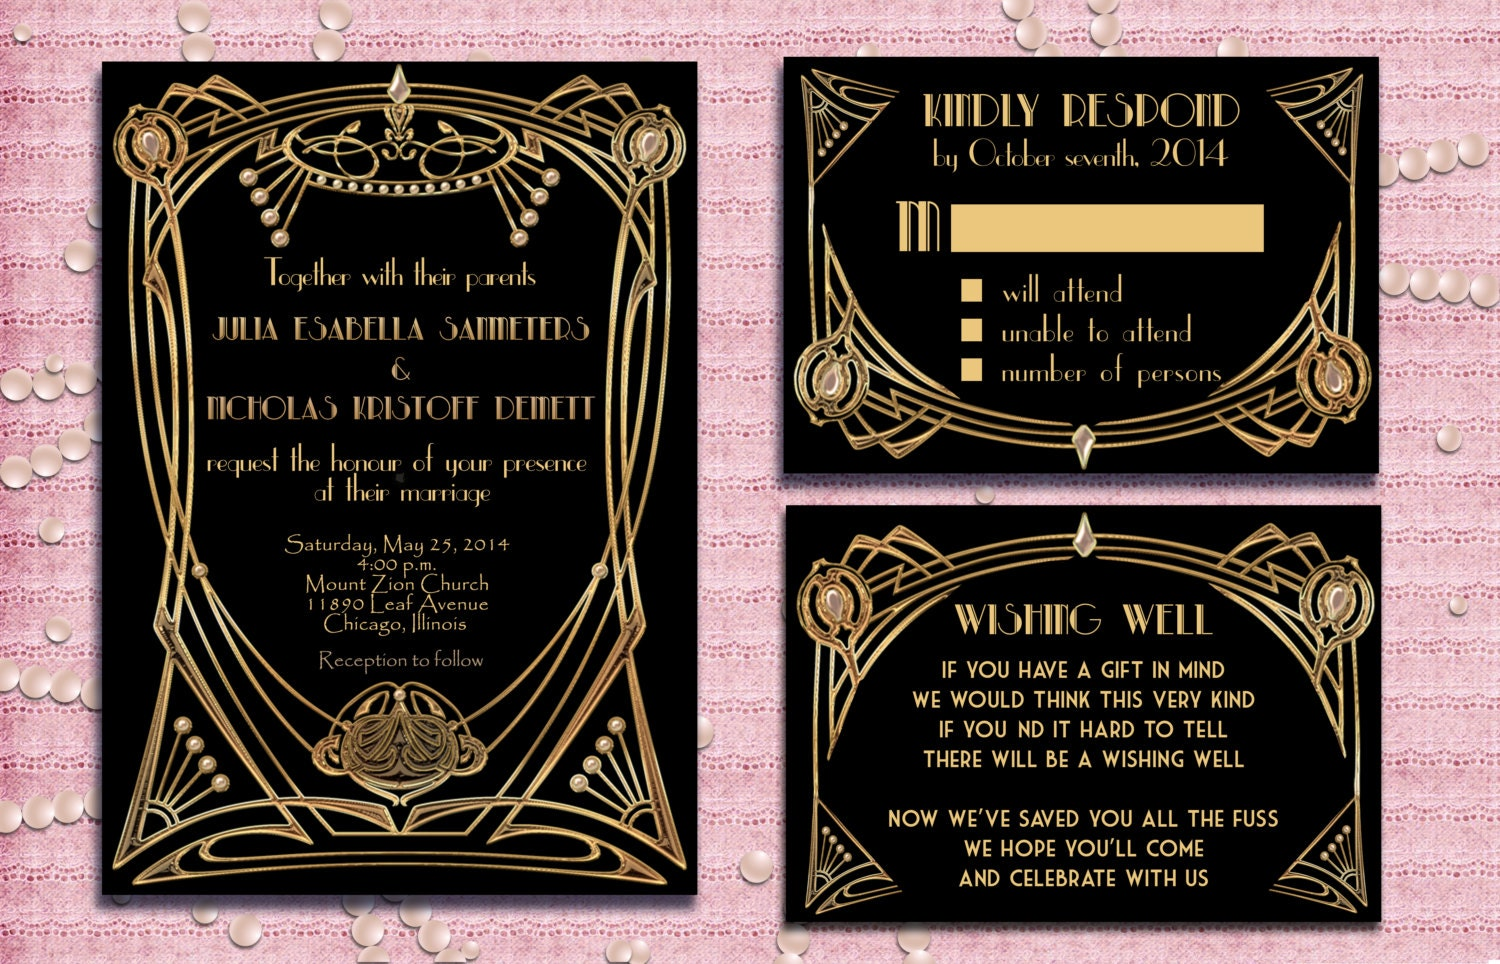 Great Gatsby Style Art Deco Wedding Invitation Suite With RSVP Card And Wishi